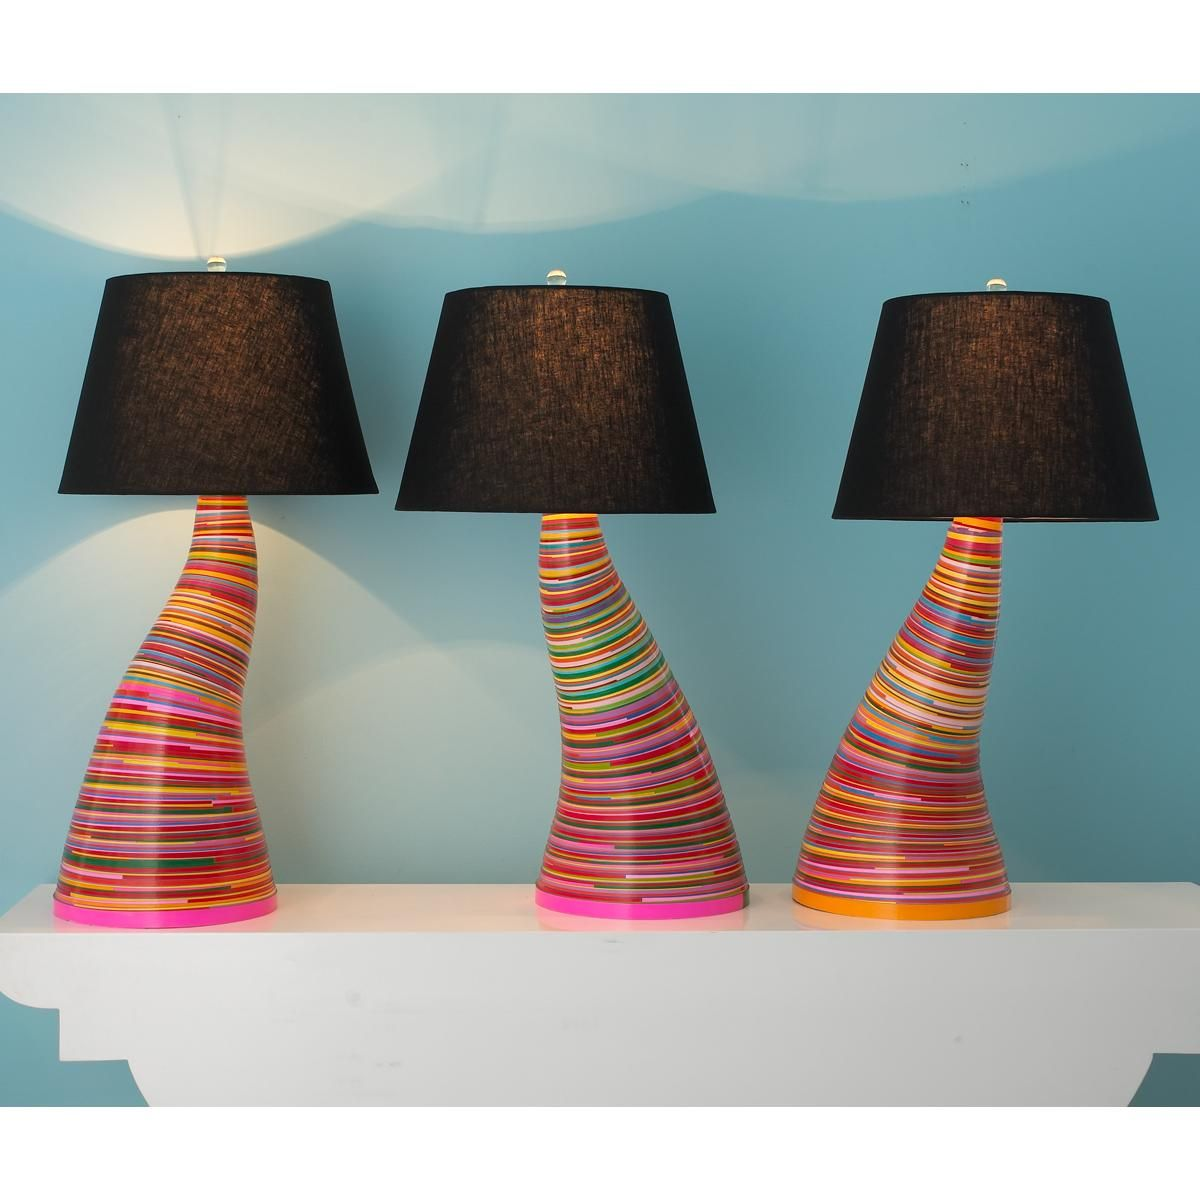 Paper Coil Table Lamp I Bet I Could Make This There S No Way I